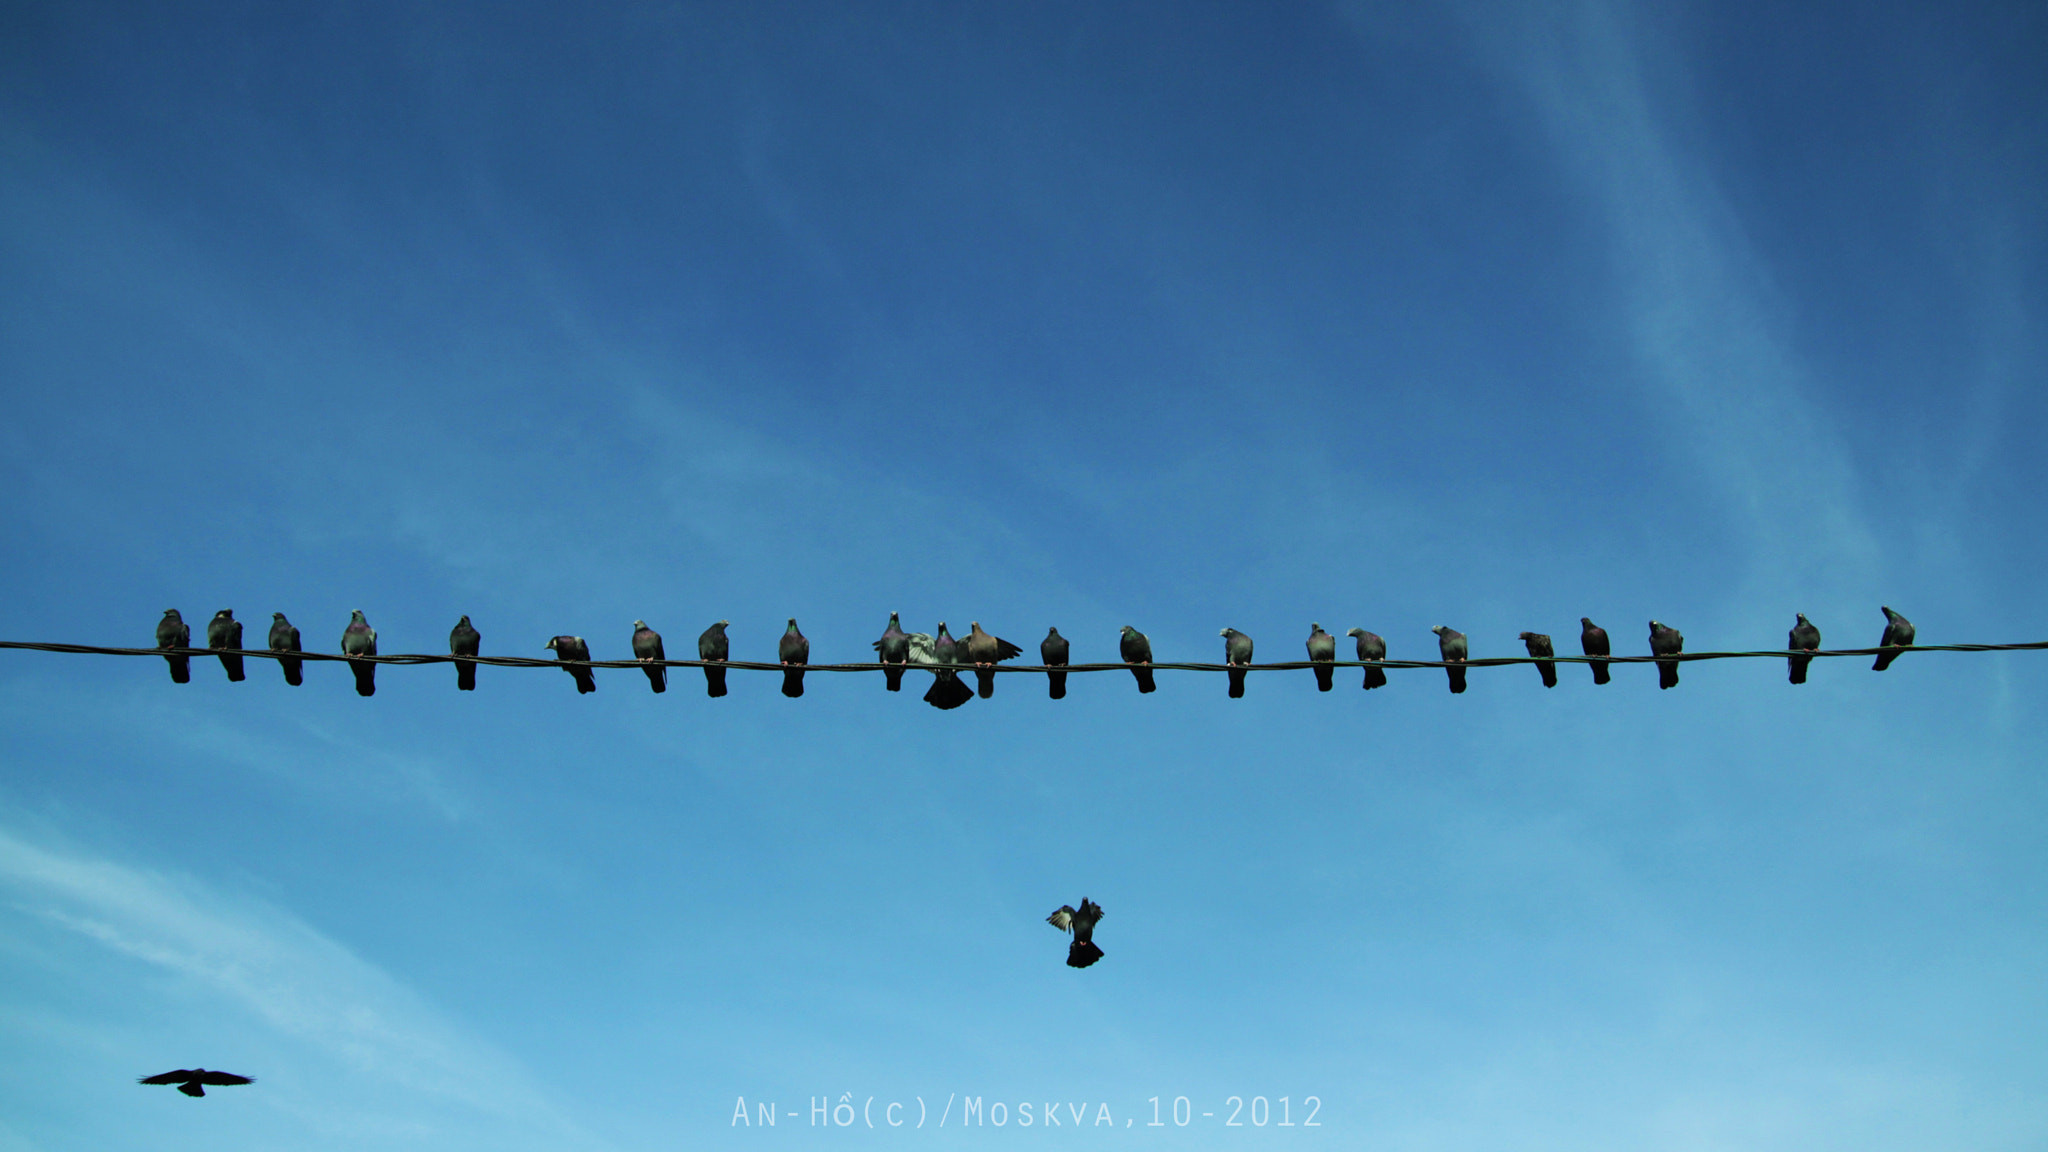 Photograph Get in the line! by Soi Rukami on 500px